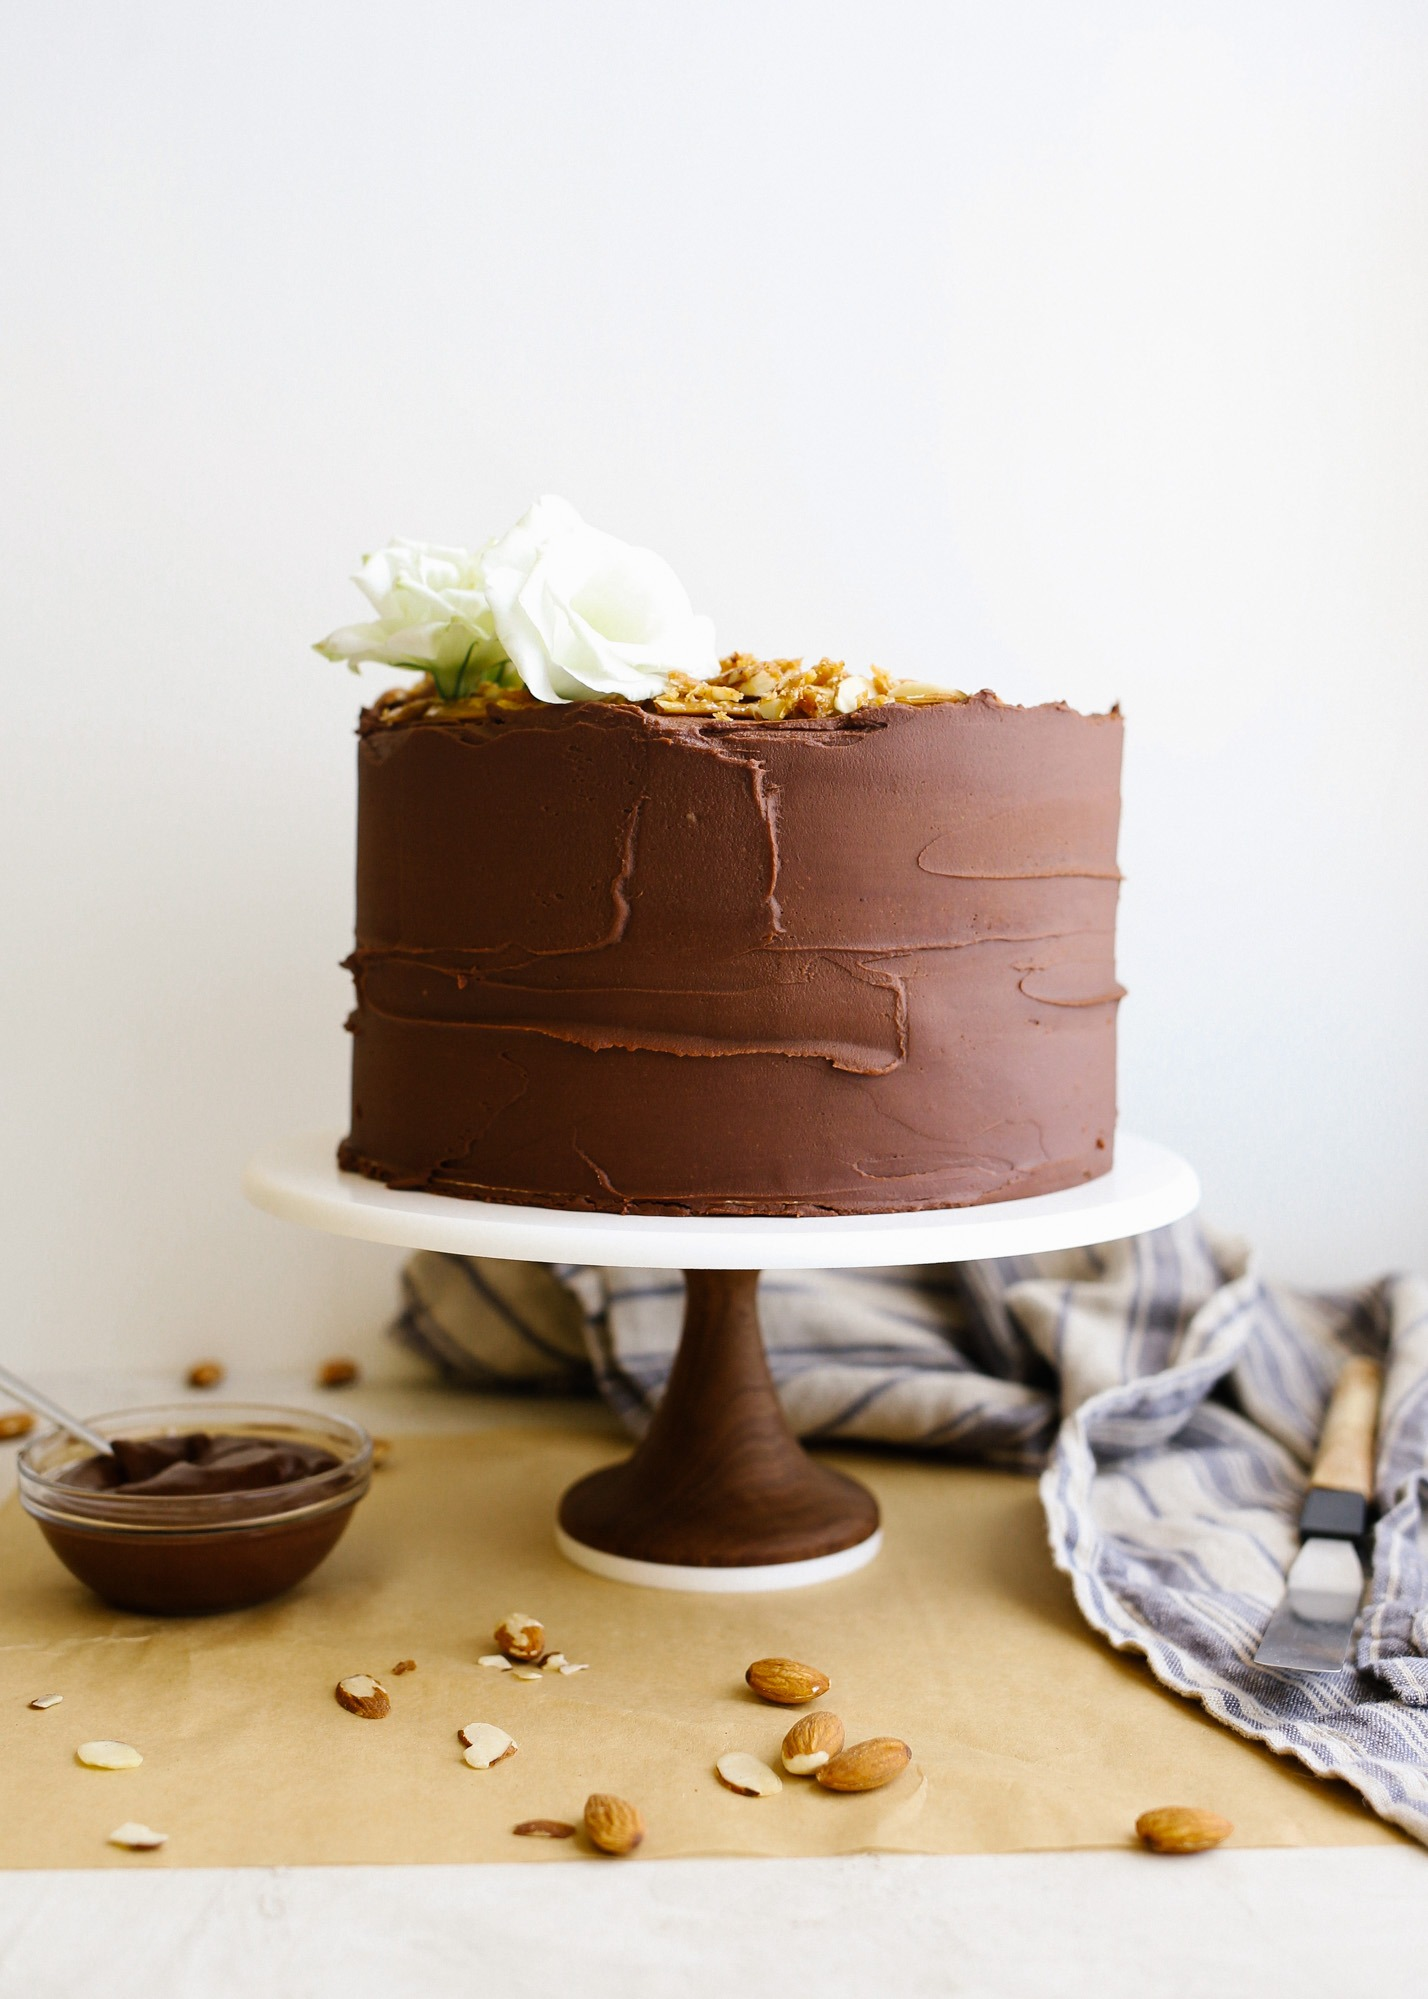 Almond Toffee Cake by Wood and Spoon. This is a vanilla layer cake with a rich chocolate fudge frosting and bits of homemade almond roca toffee throughout. The layer cake has a sweet and salty flavor and is rich with the addition of real chocolate buttercream. learn how to make this caramel tasting stacked celebration cake on thewoodandspoon.com